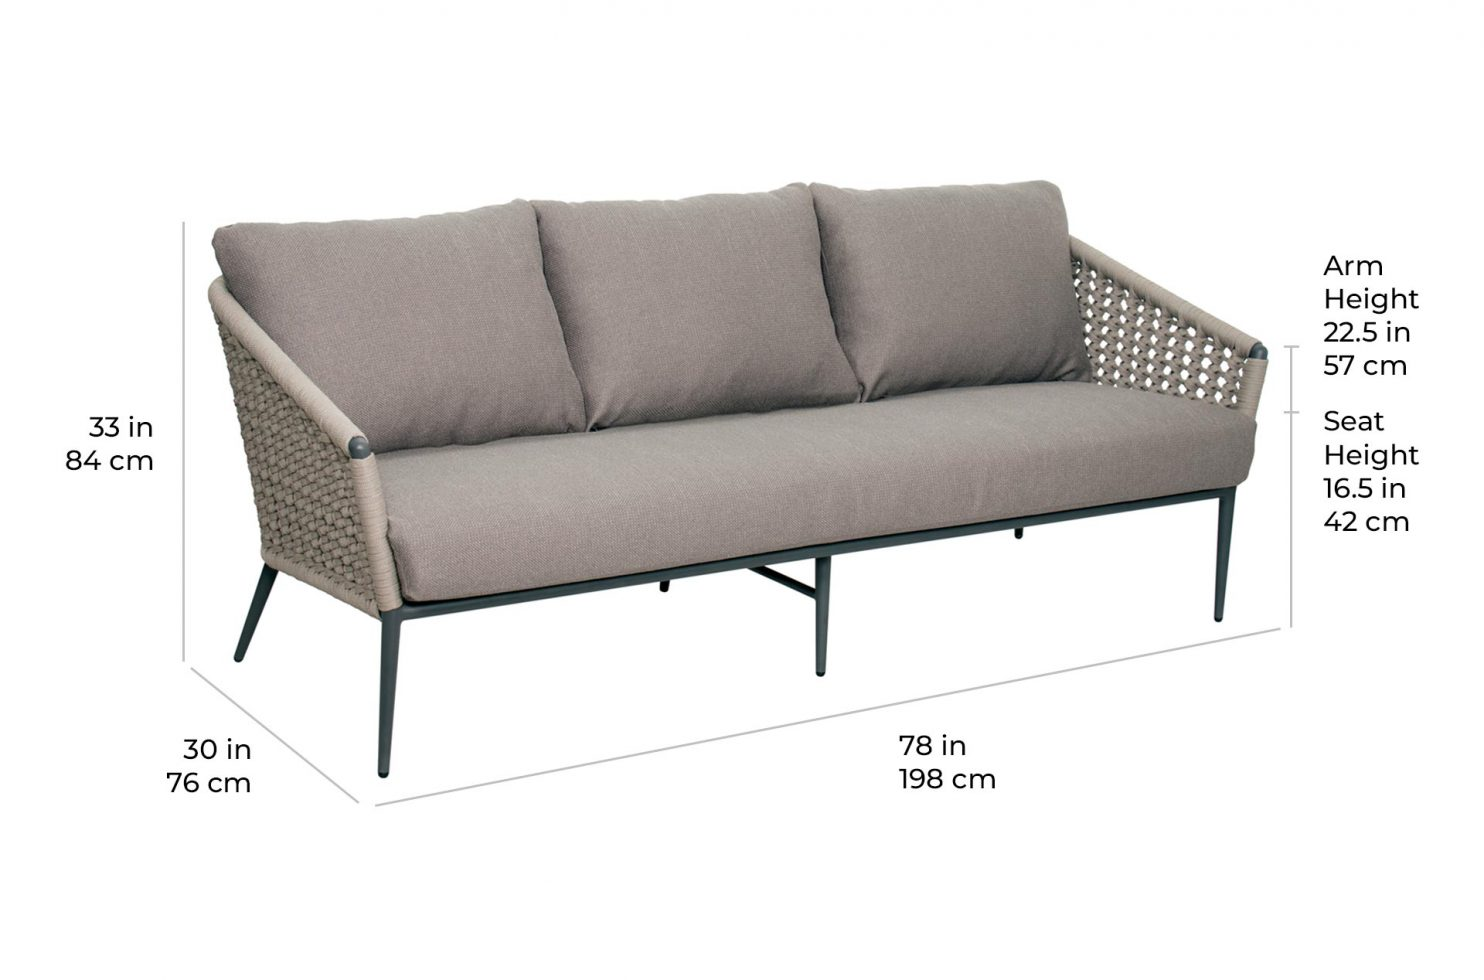 arch antilles sofa 620FT016P2 scale dims